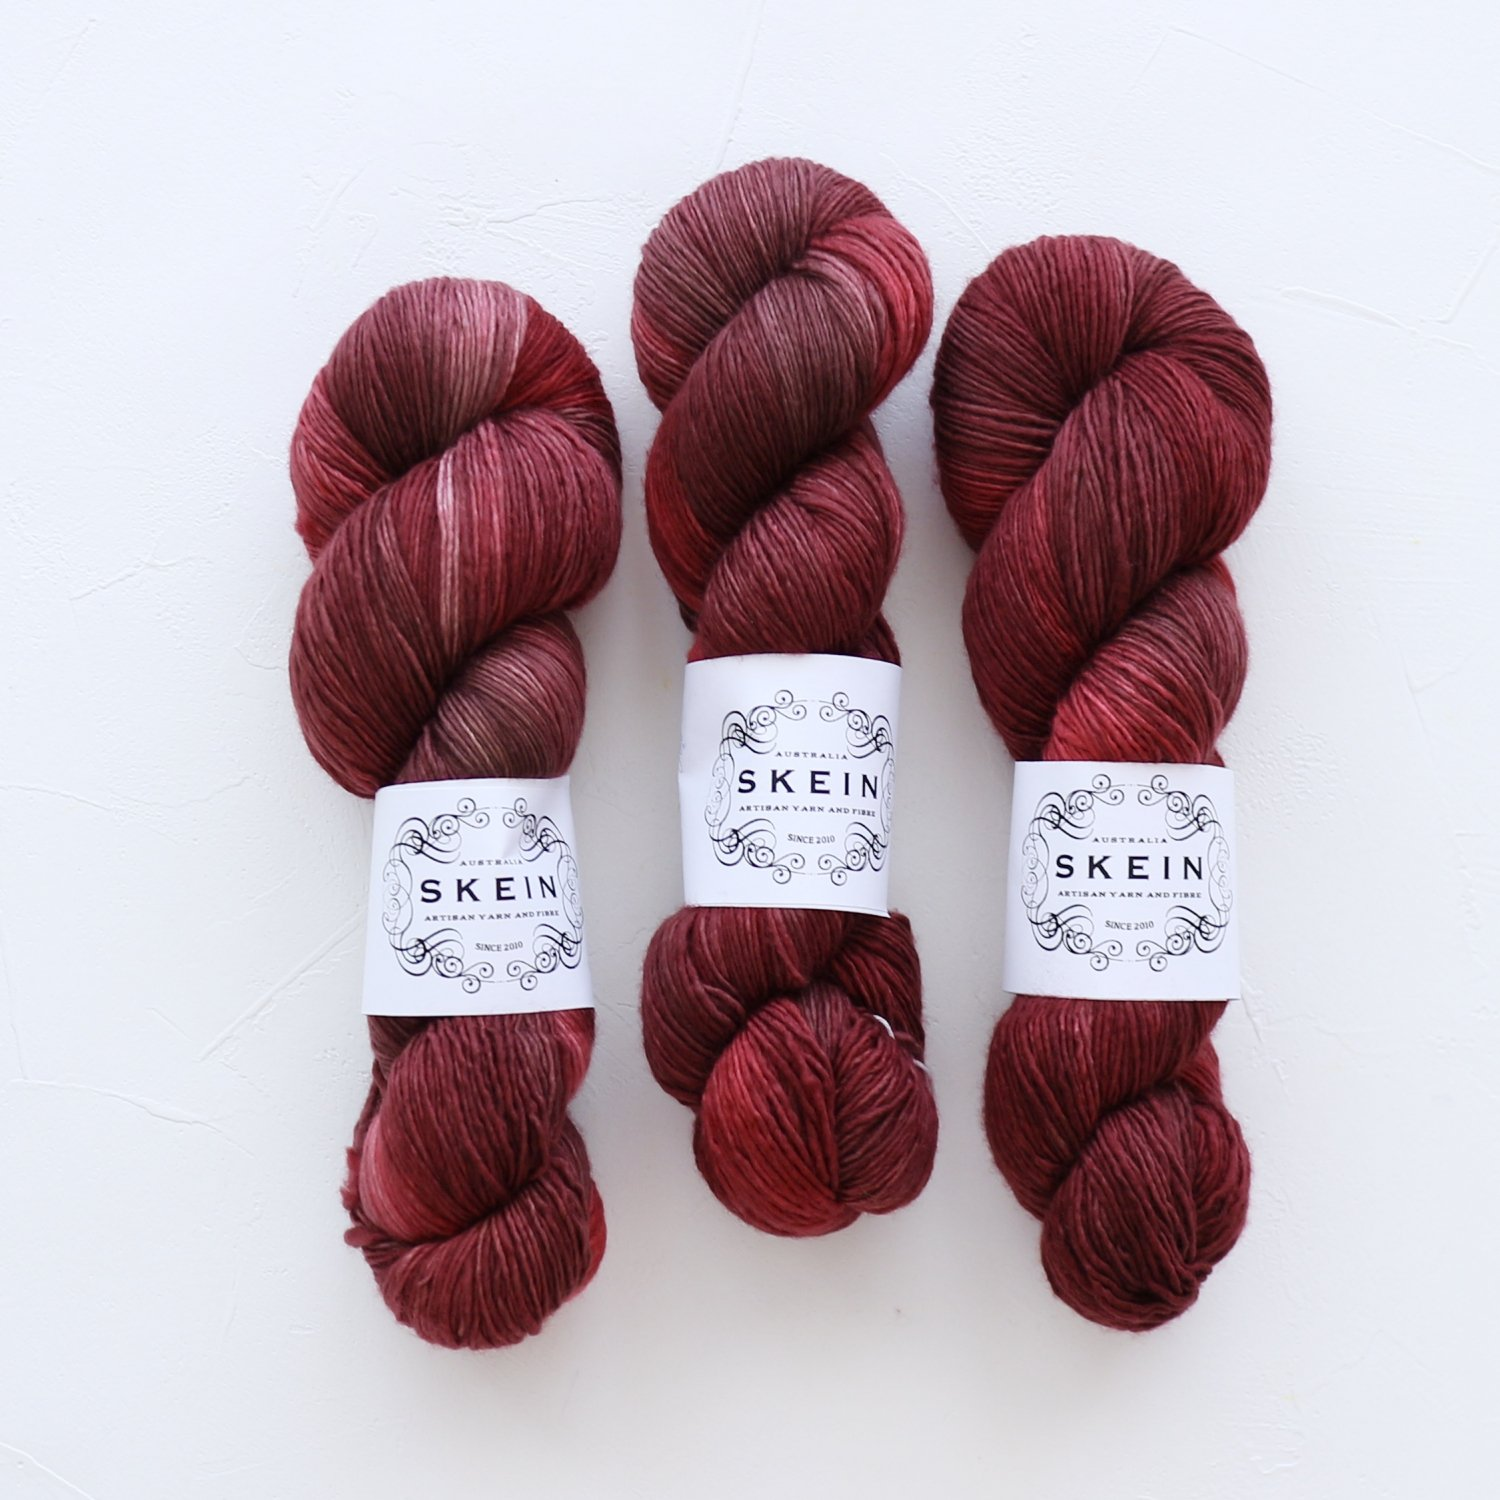 【Skein Yarn】<br>Uptown Sock<br>Henna Blush